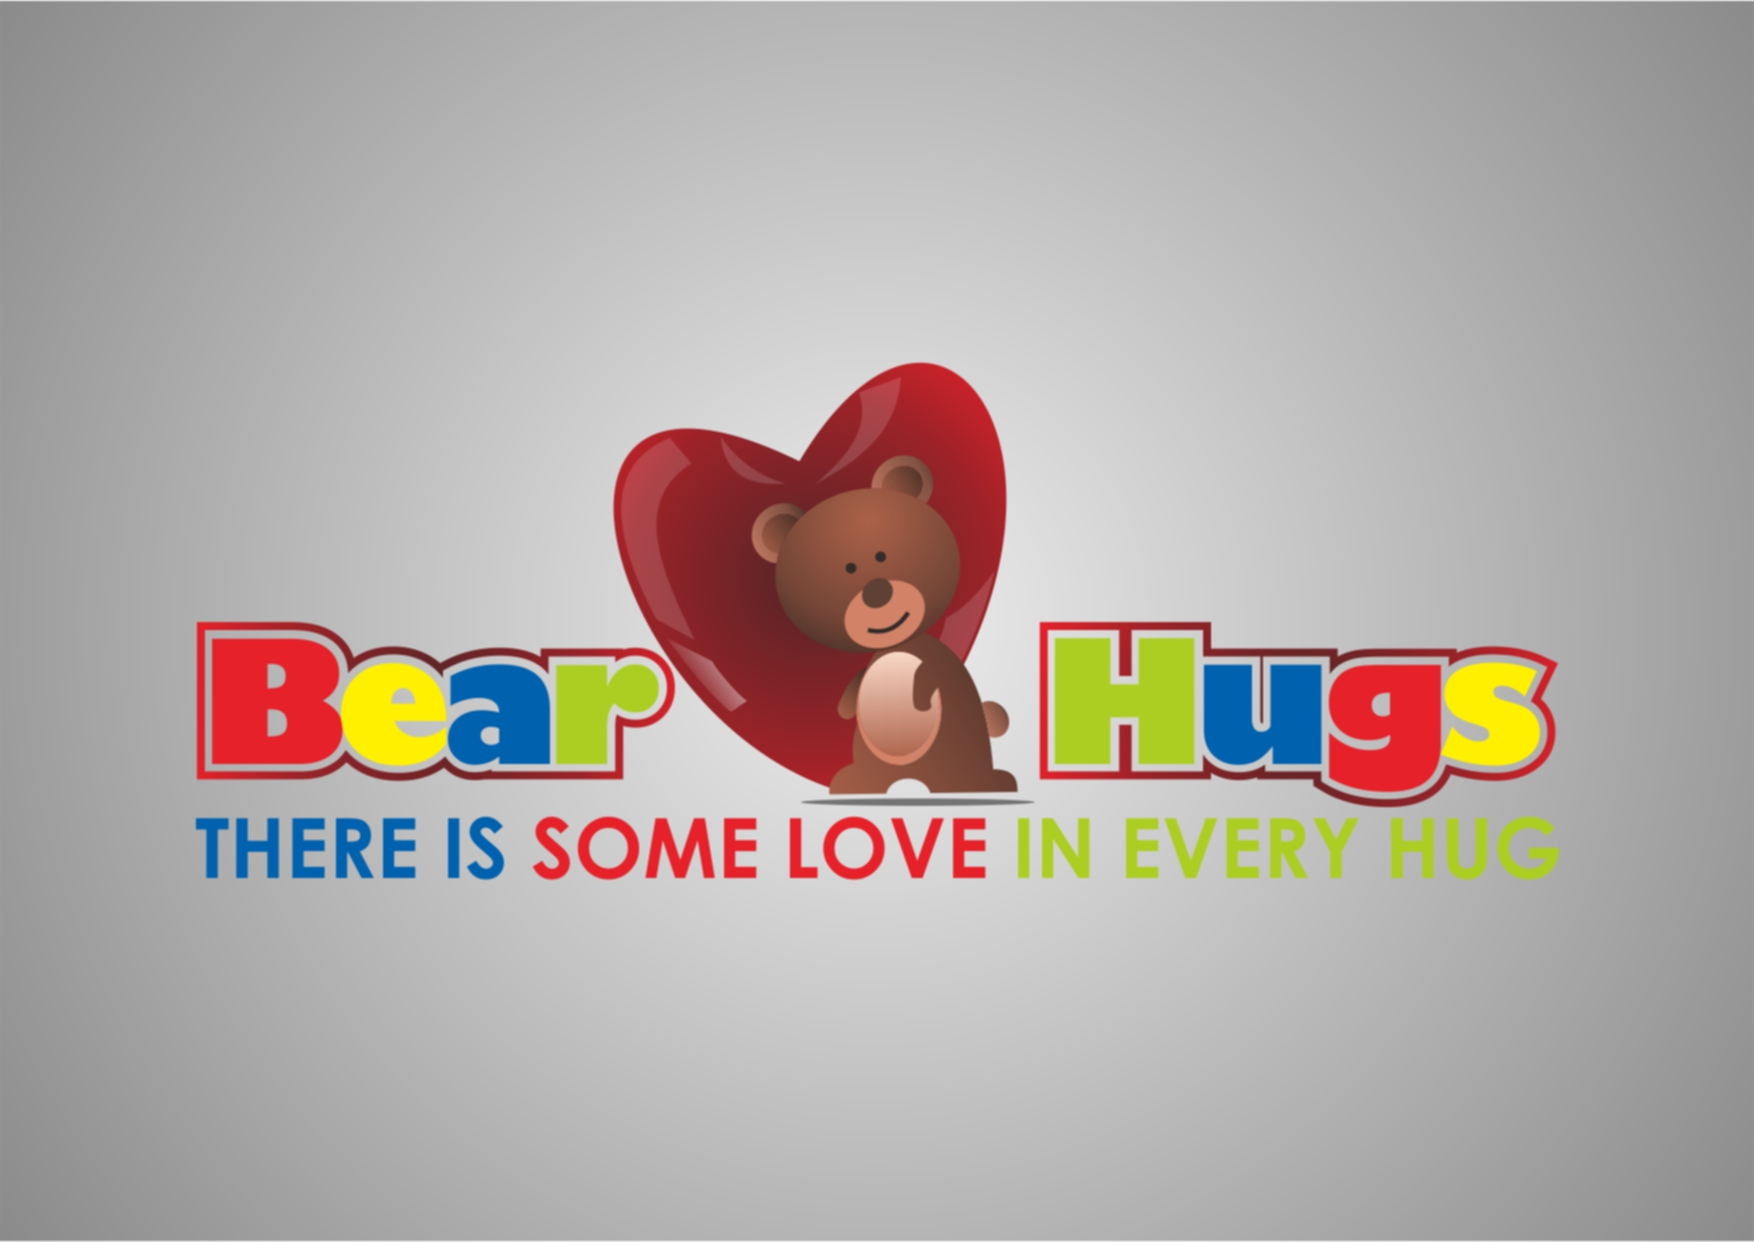 Logo Design by Private User - Entry No. 13 in the Logo Design Contest Inspiring Logo Design for BearHugs.